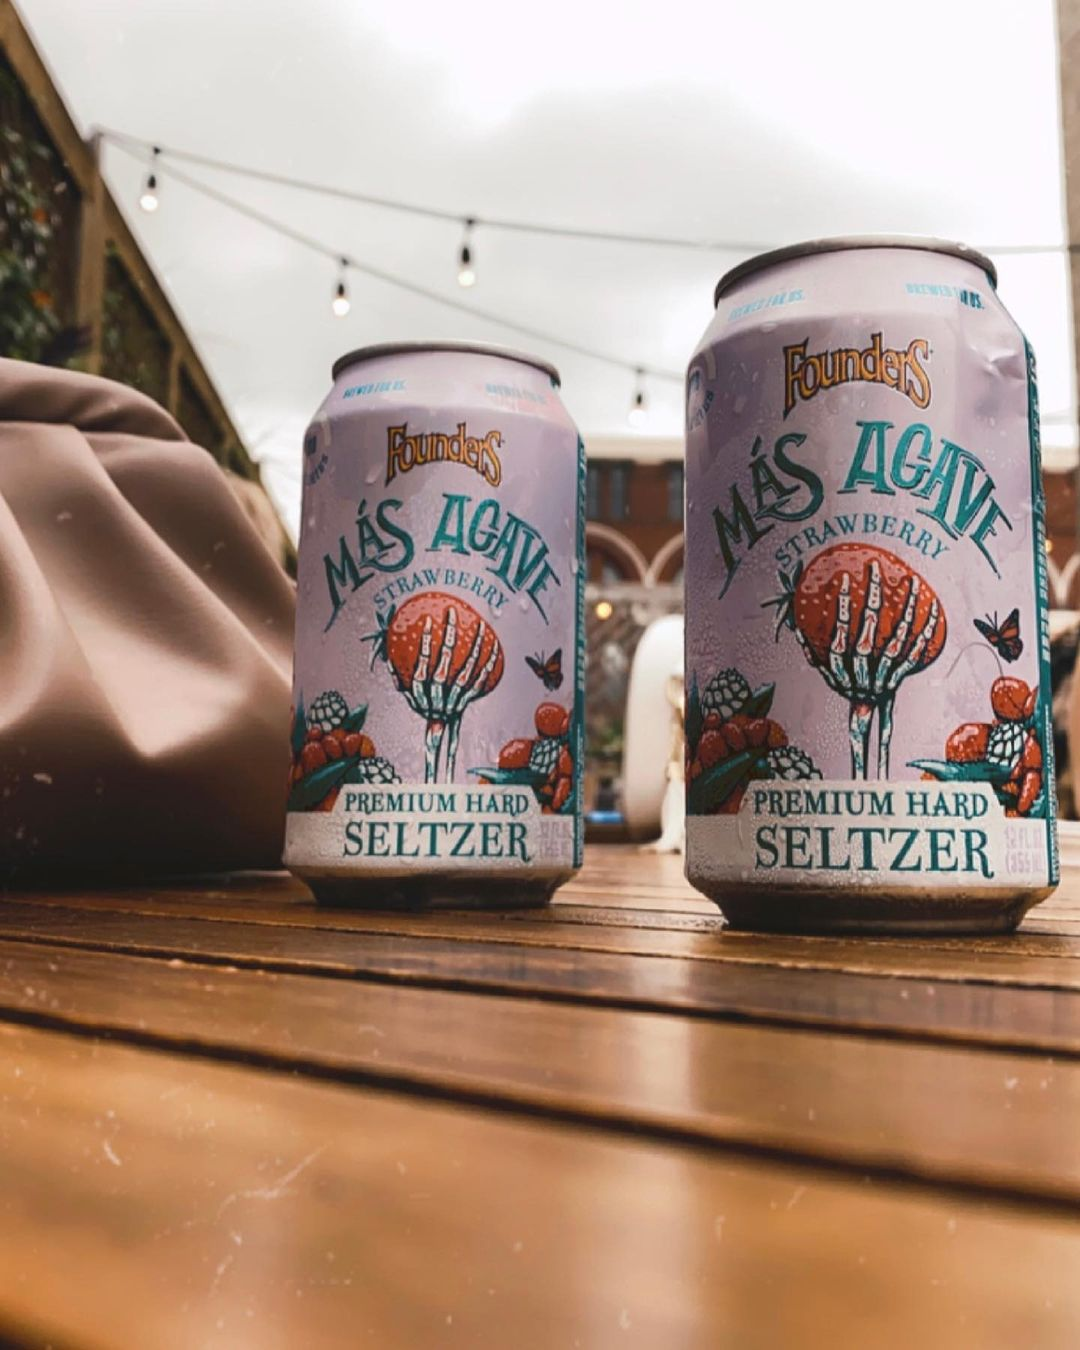 Two cans of mas agave premium hard seltzer strawberry in a beer garden.